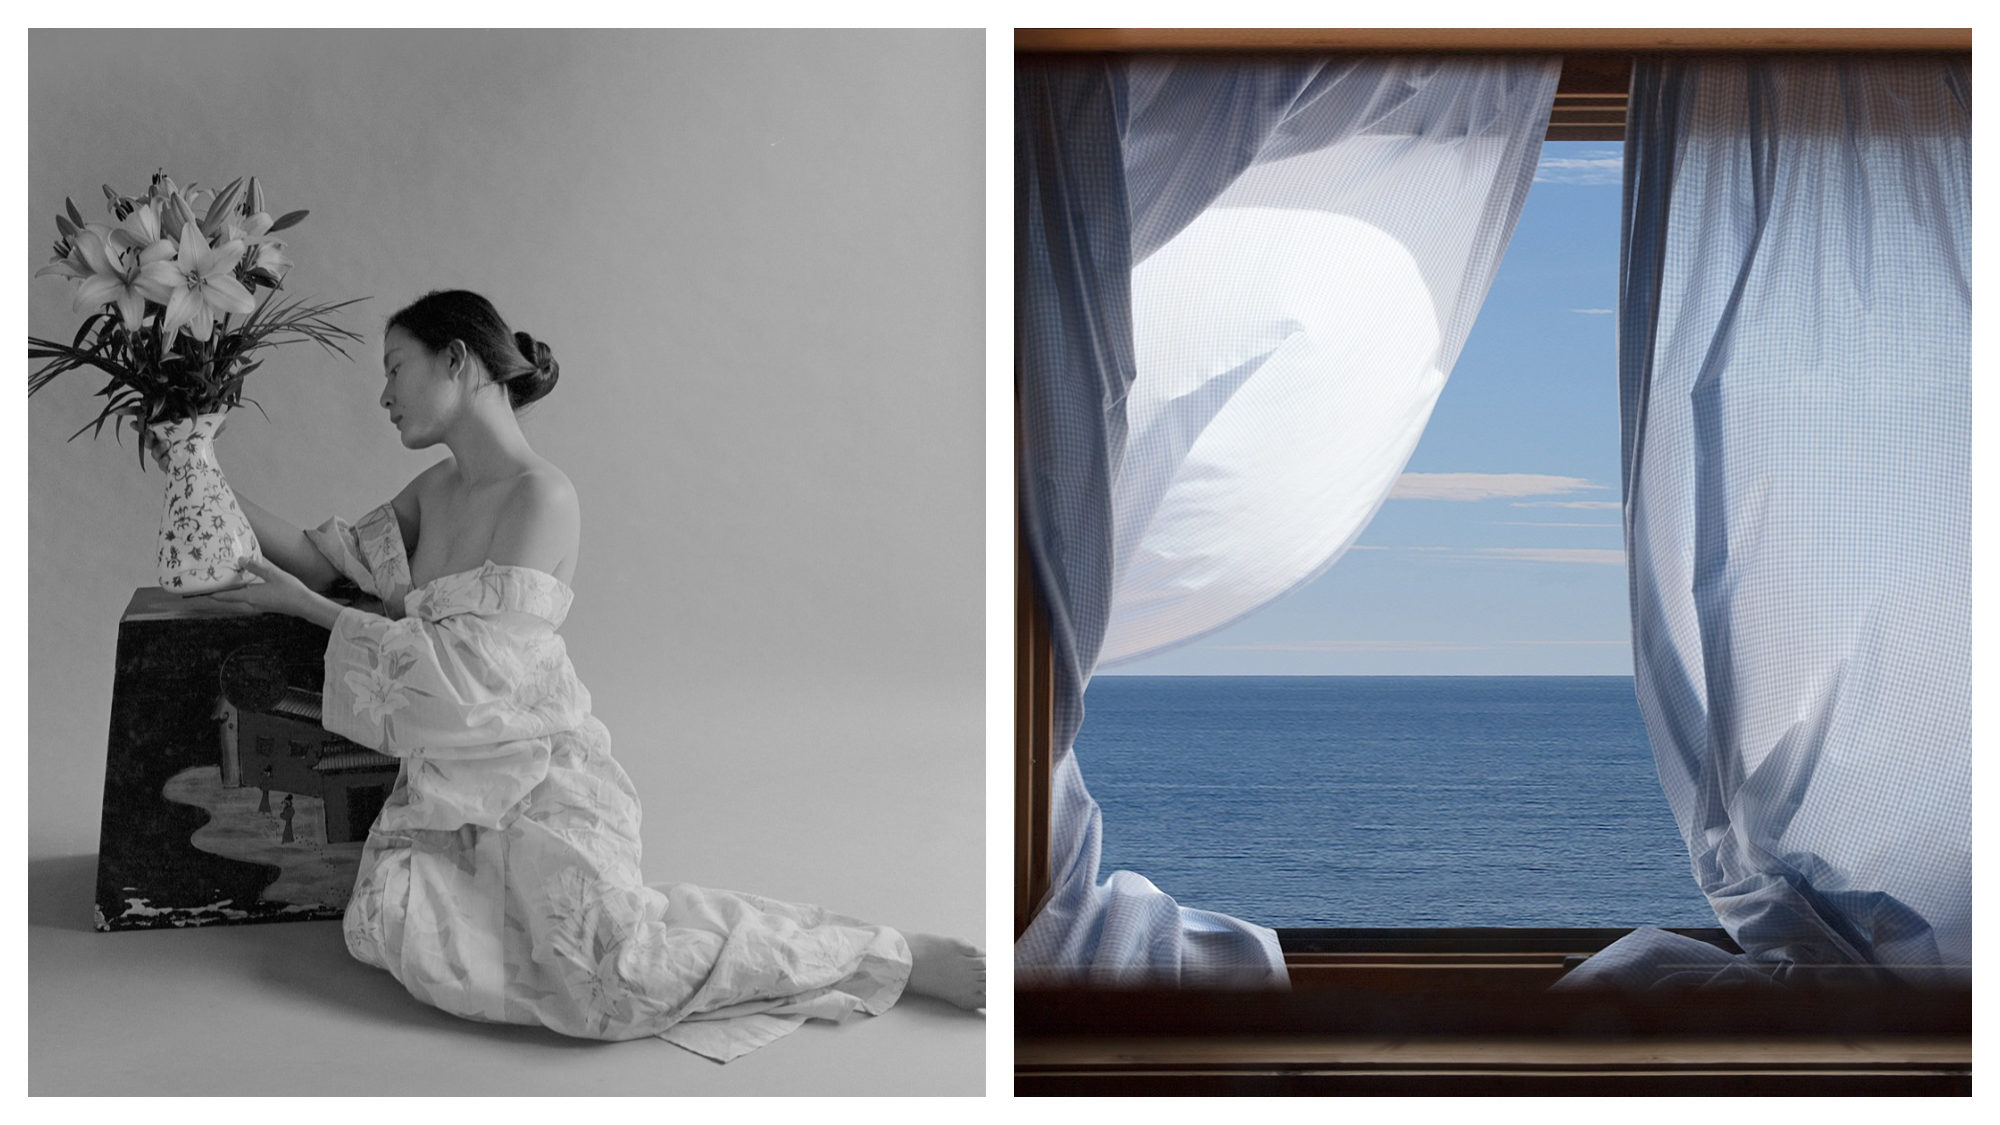 A black and white photograph of a woman wearing a white dress off the shoulders holding at a vase of flowers (left). A photograph of an open window, curtain billowing revealing a blue ocean (right).